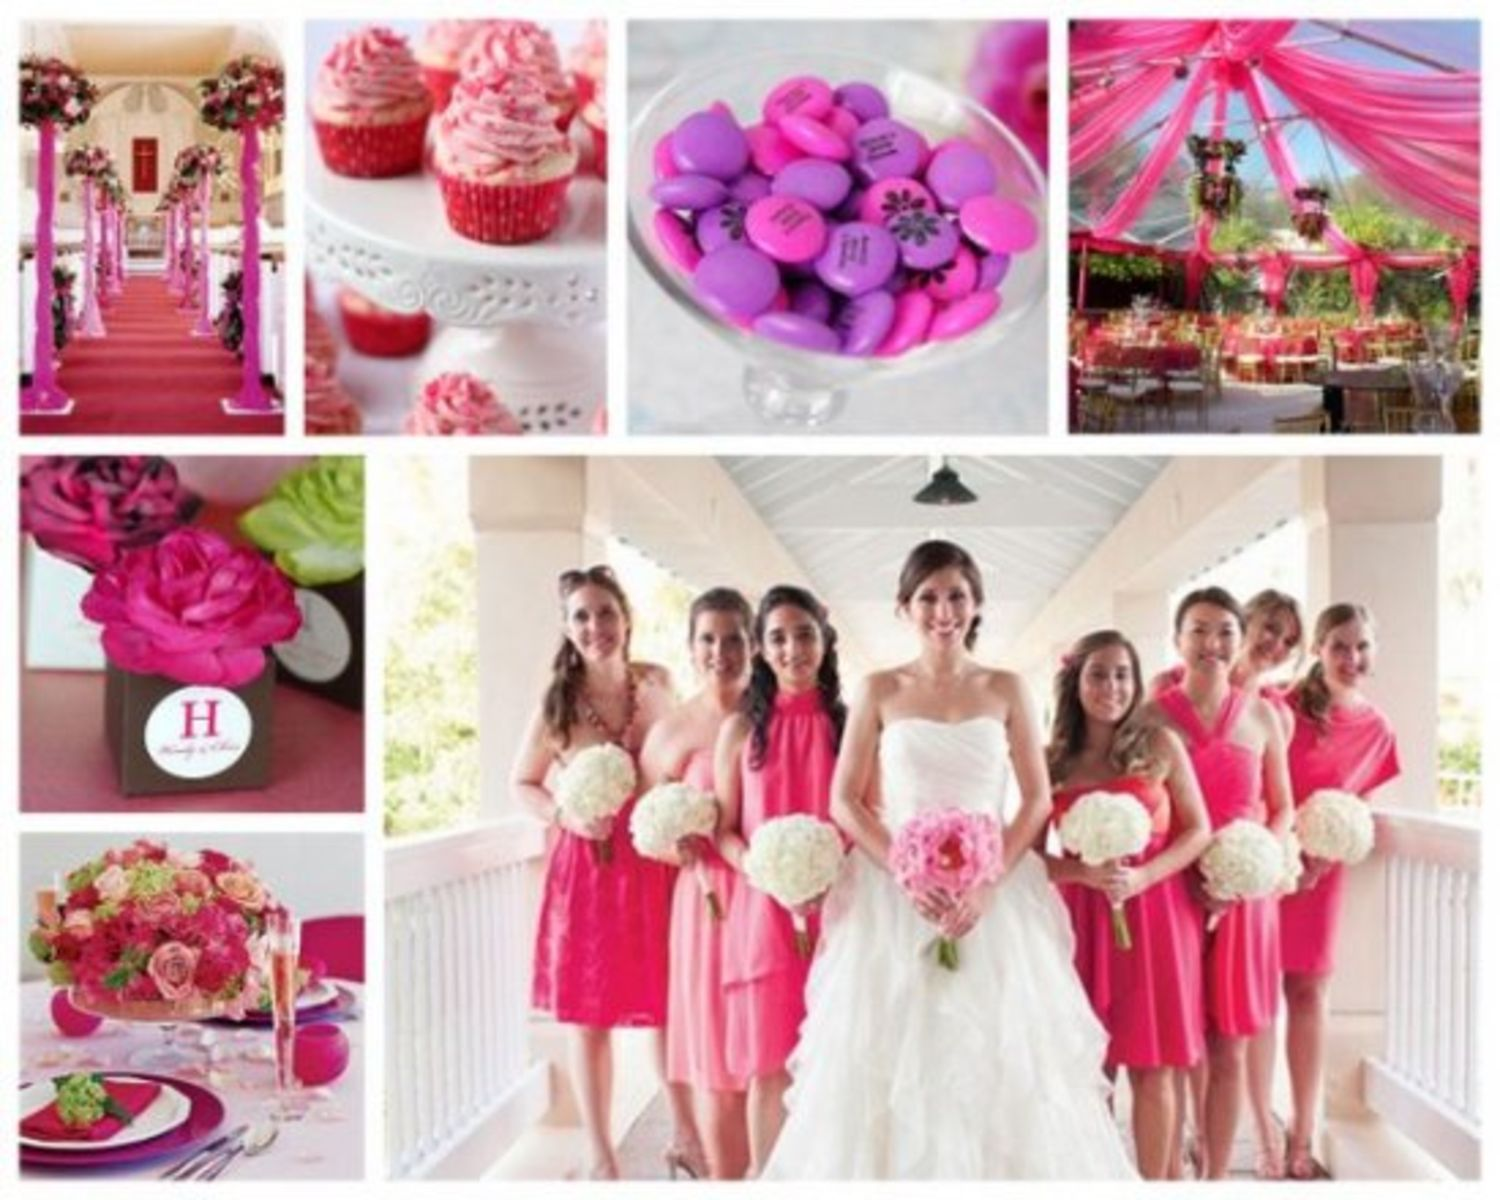 Wedding color themes marvelous summer wedding colors and themes wedding color themes marvelous summer wedding colors and junglespirit Choice Image